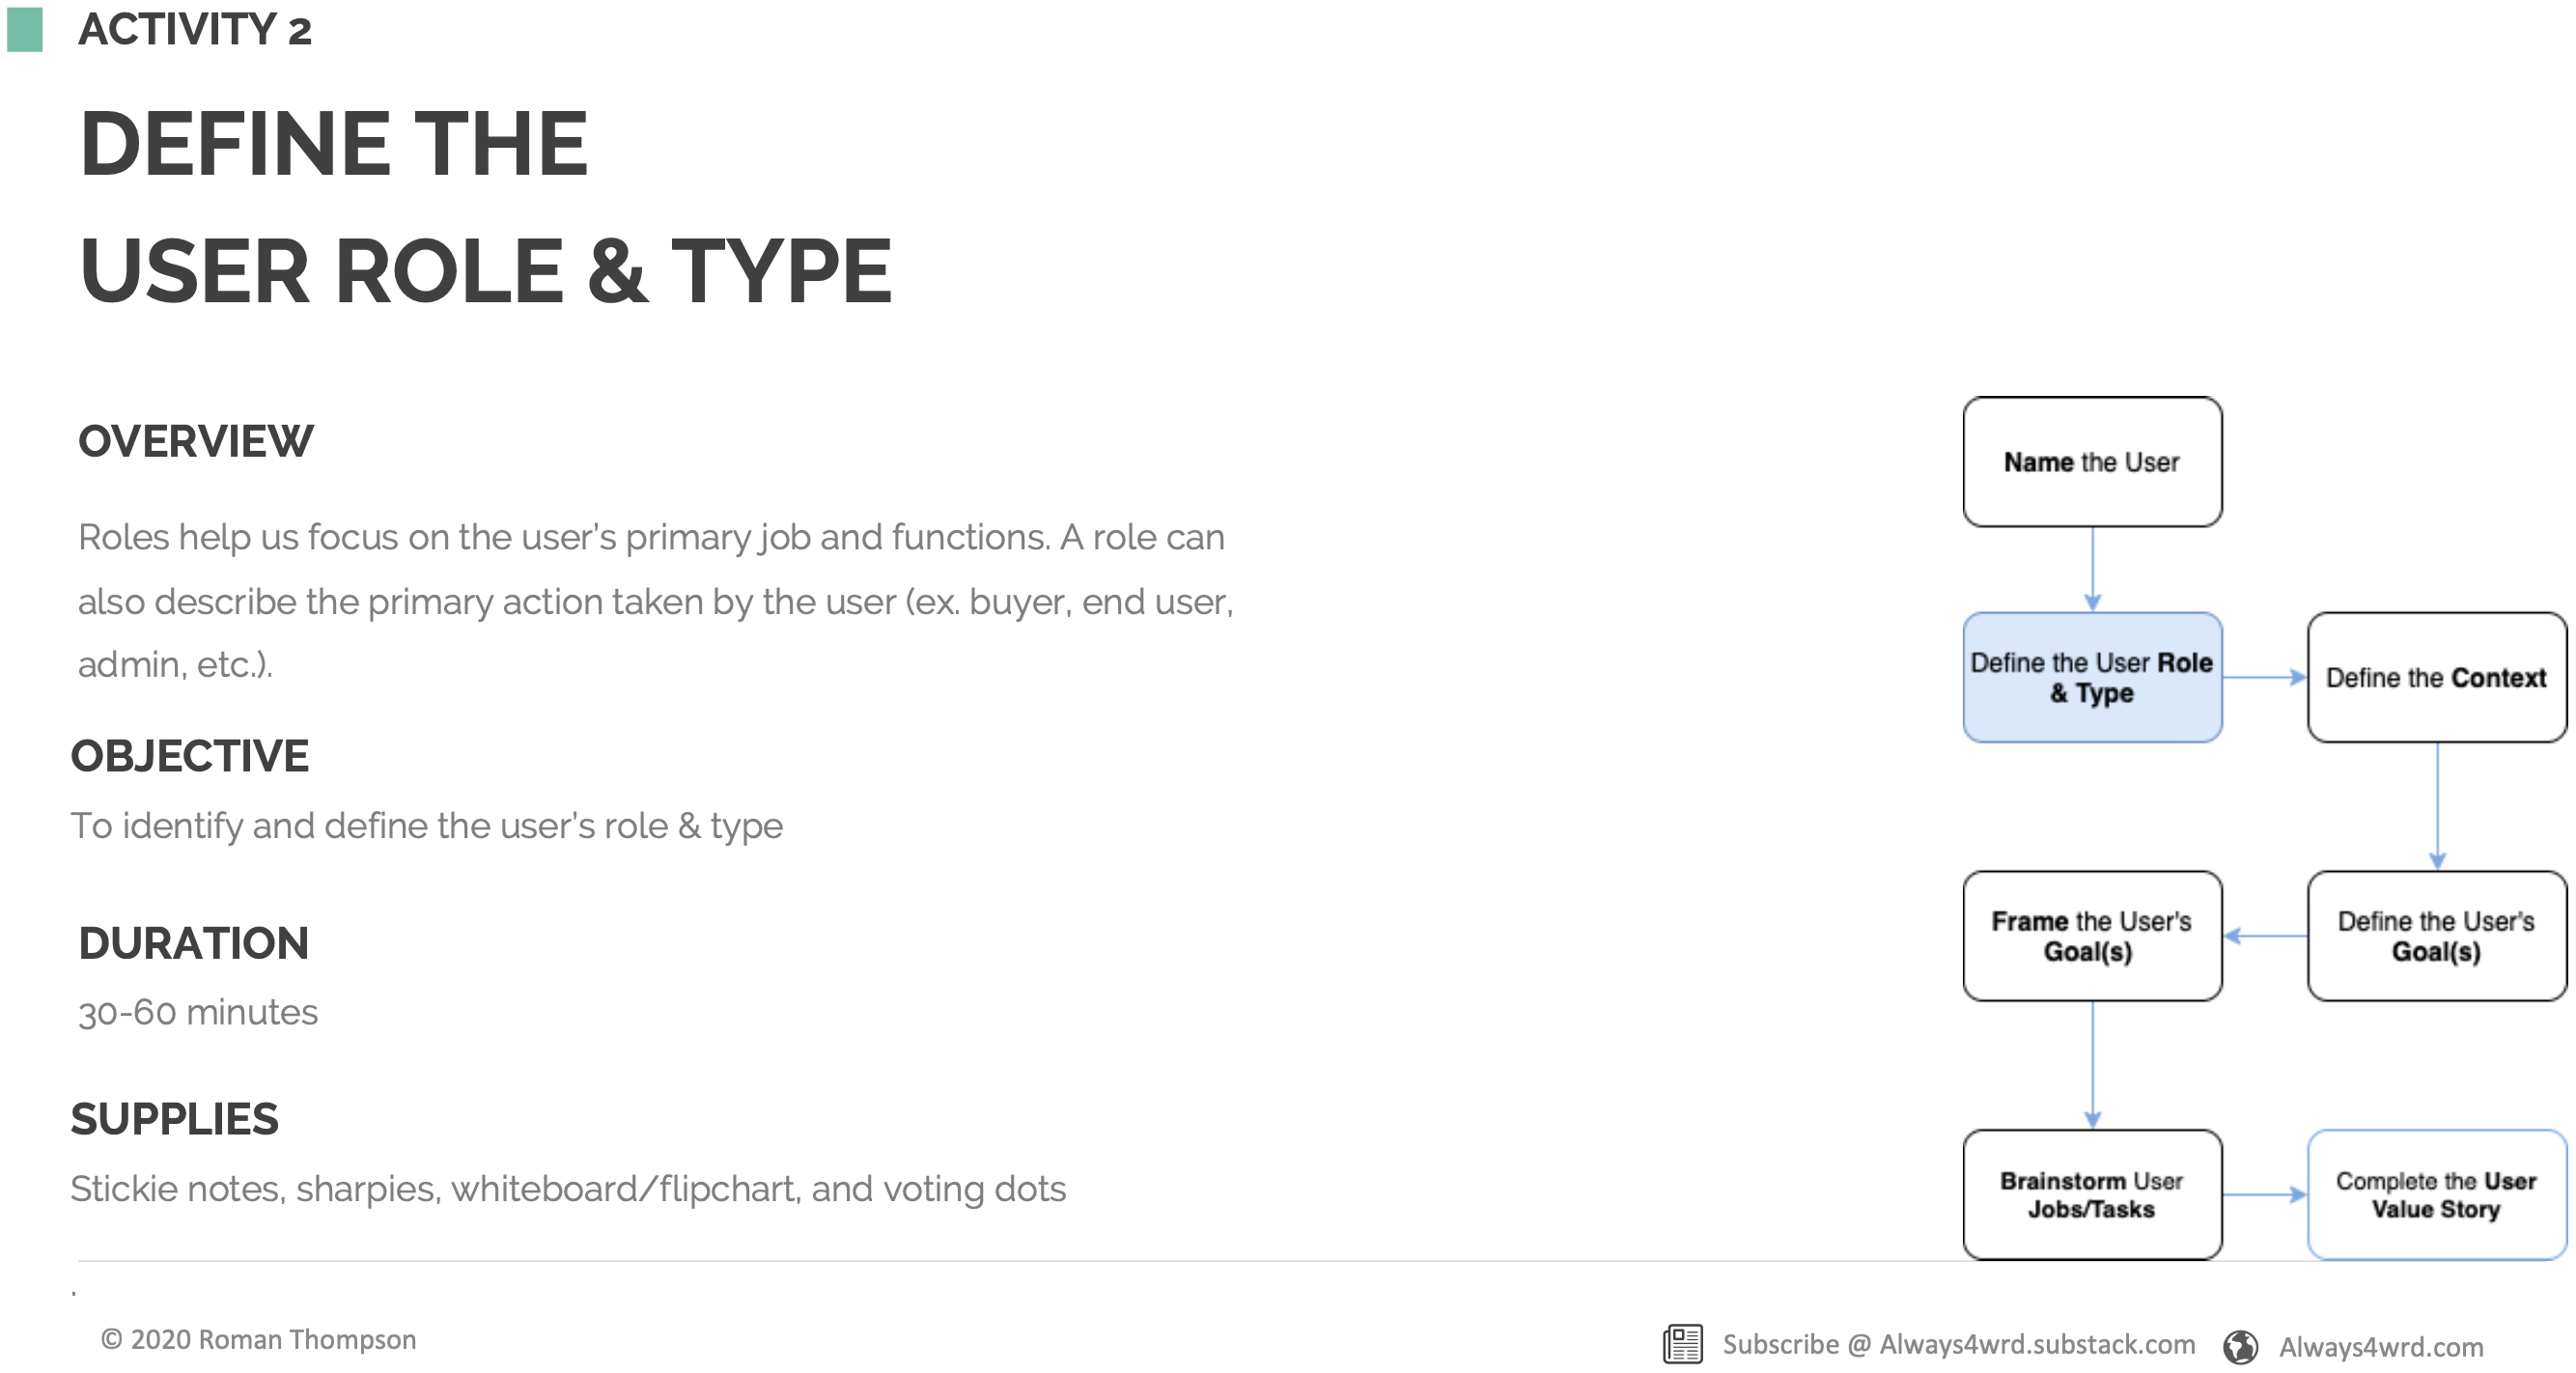 User Value Story—User Role & Type